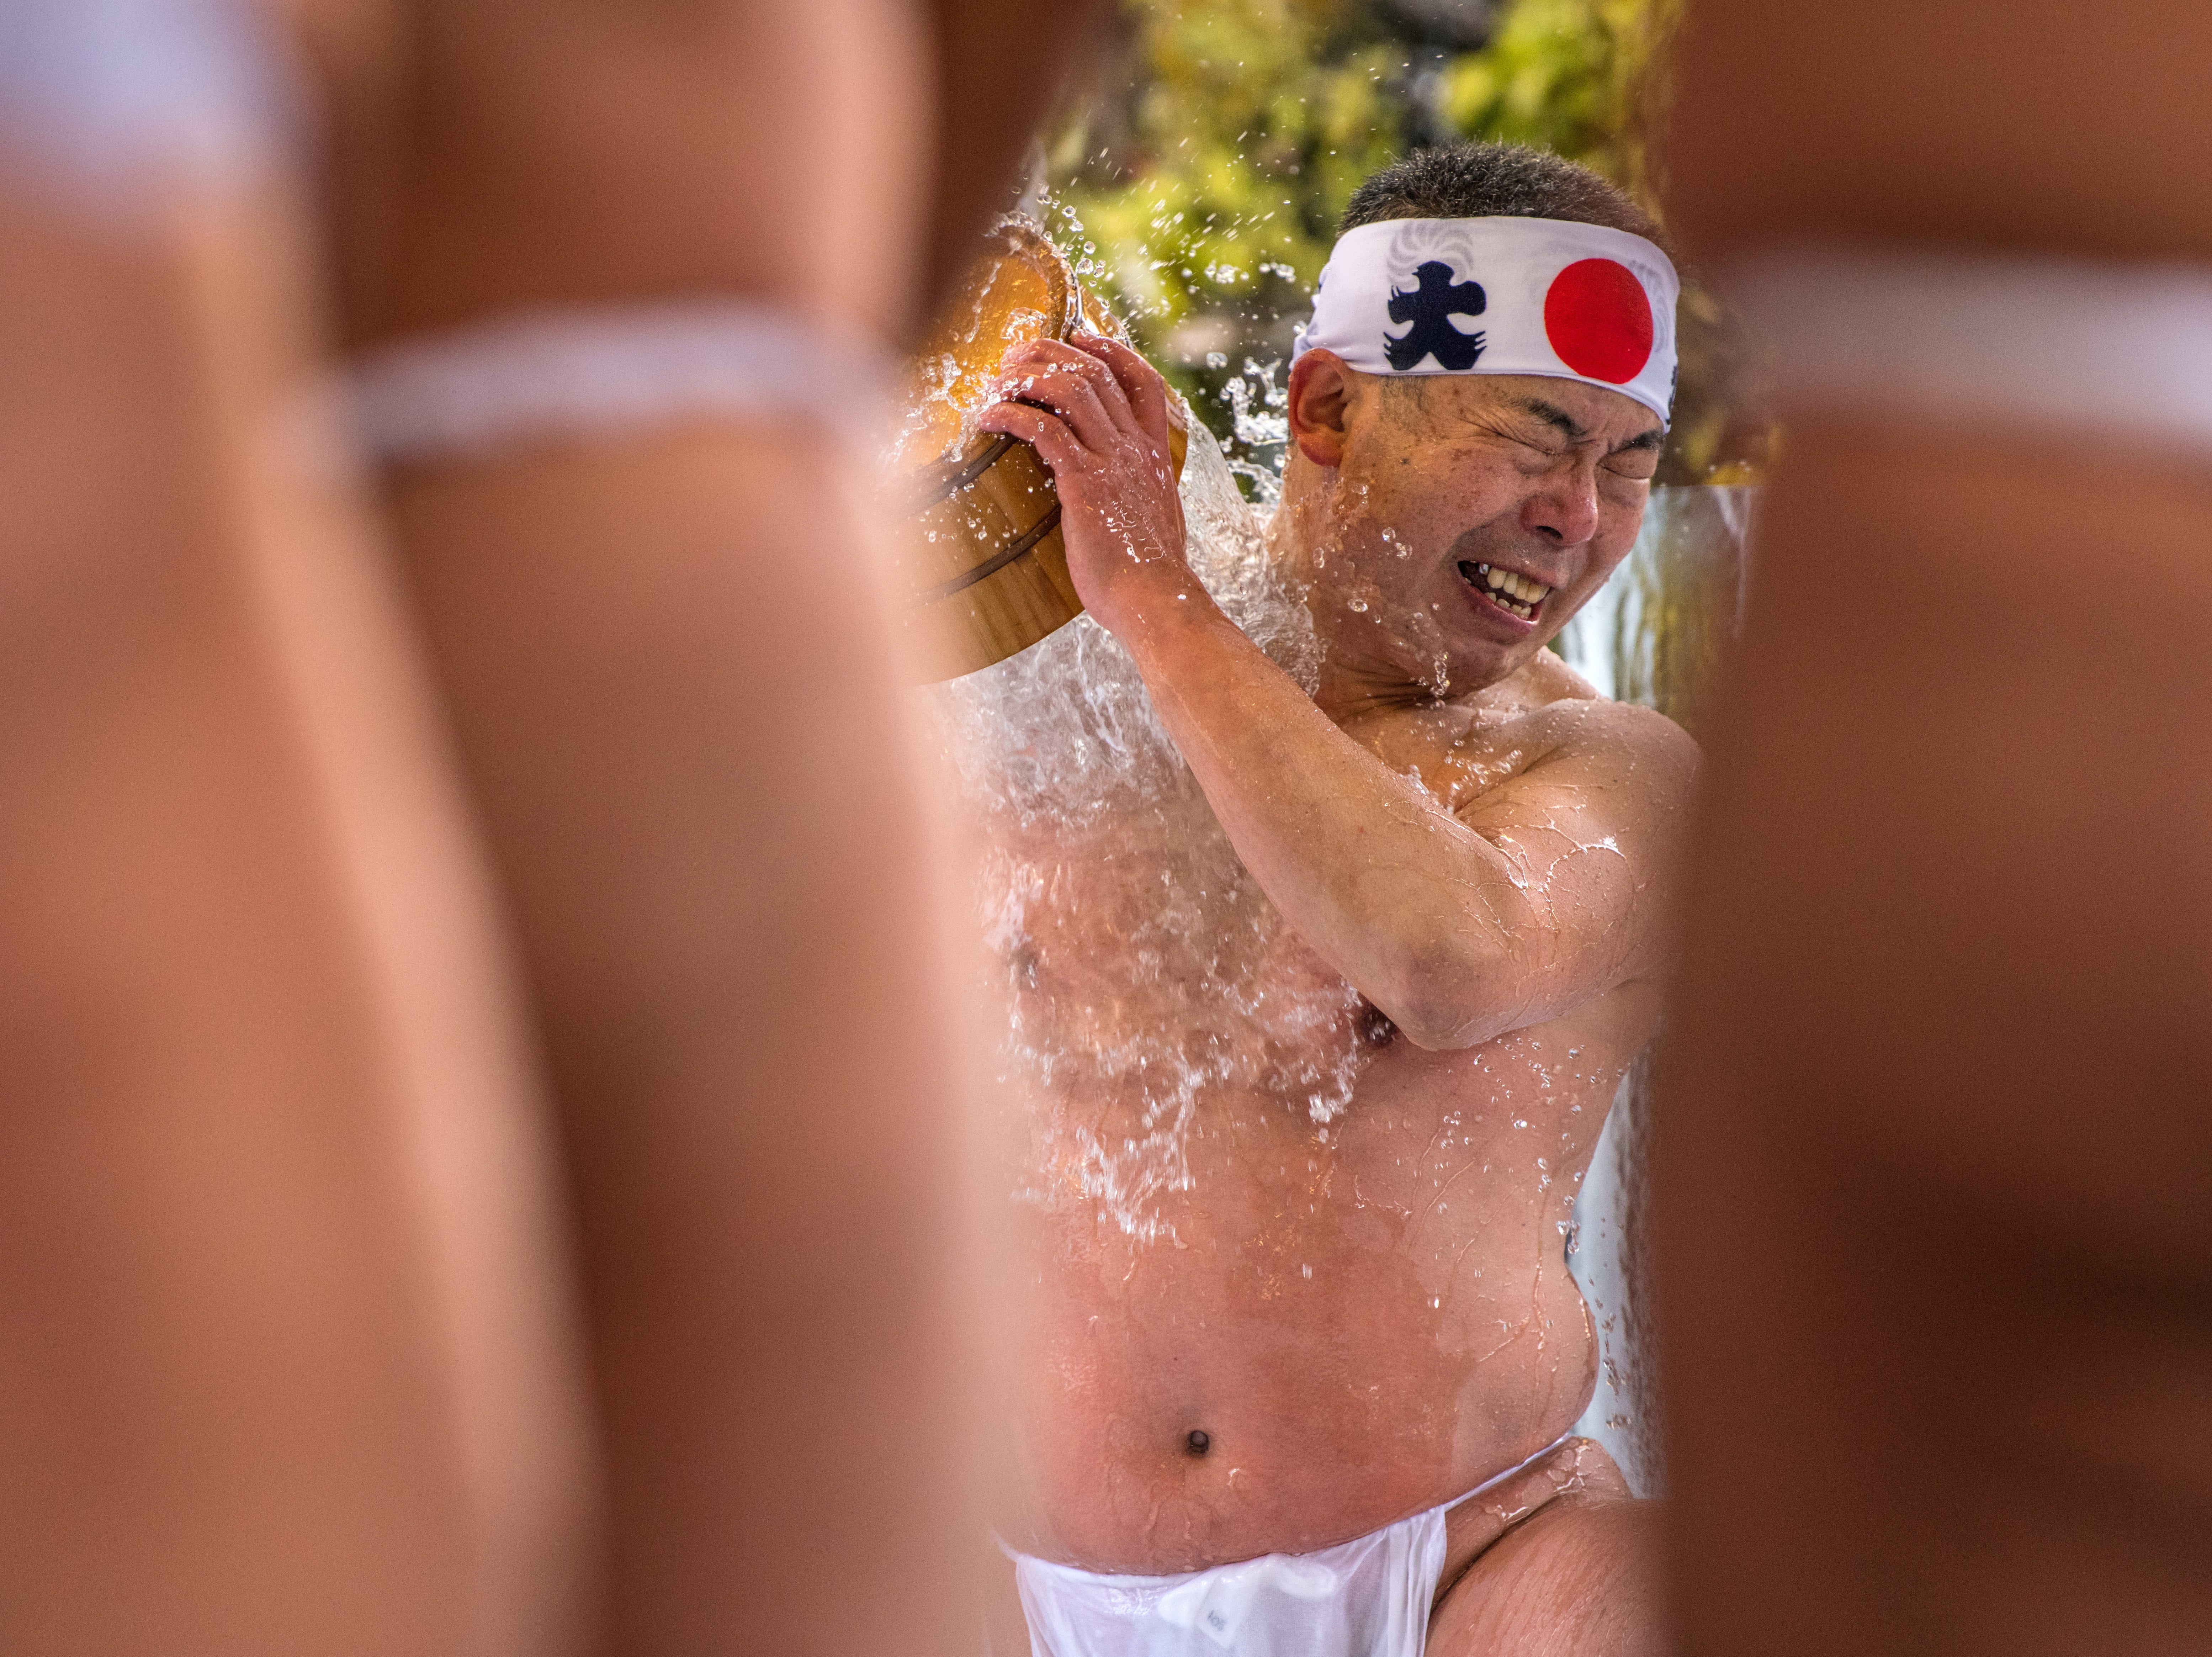 Jan. 13, 2018: A man pours ice-cold water over himself during a purification ritual at Kanda Myojin shrine in Tokyo, Japan. The coming of age purification ritual is a part of the two-day festival held annually at Kanda Myojin Shrine each January to honor and pay homage to Daikoku, the deity of fortune.